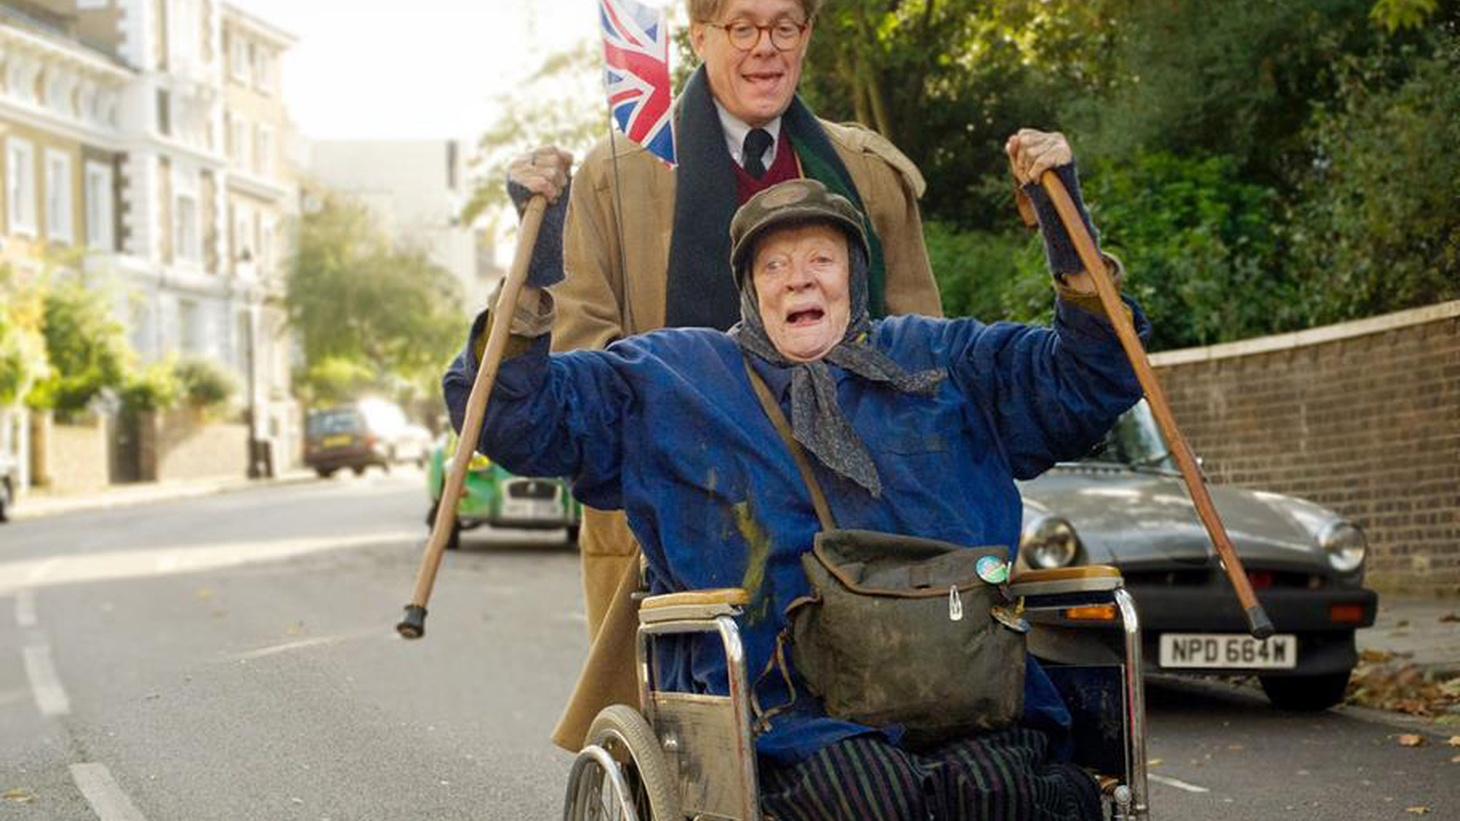 The Lady in the Van is wonderfully funny, terribly touching and a vehicle -- with comically dilapidated vehicles -- for the boundless gifts of Maggie Smith. Like Paolo Sorrentino's previous film, The Great Beauty, Youth is full of Fellini-esque flourishes, plus glib existentialism juxtaposed with synthetic optimism.